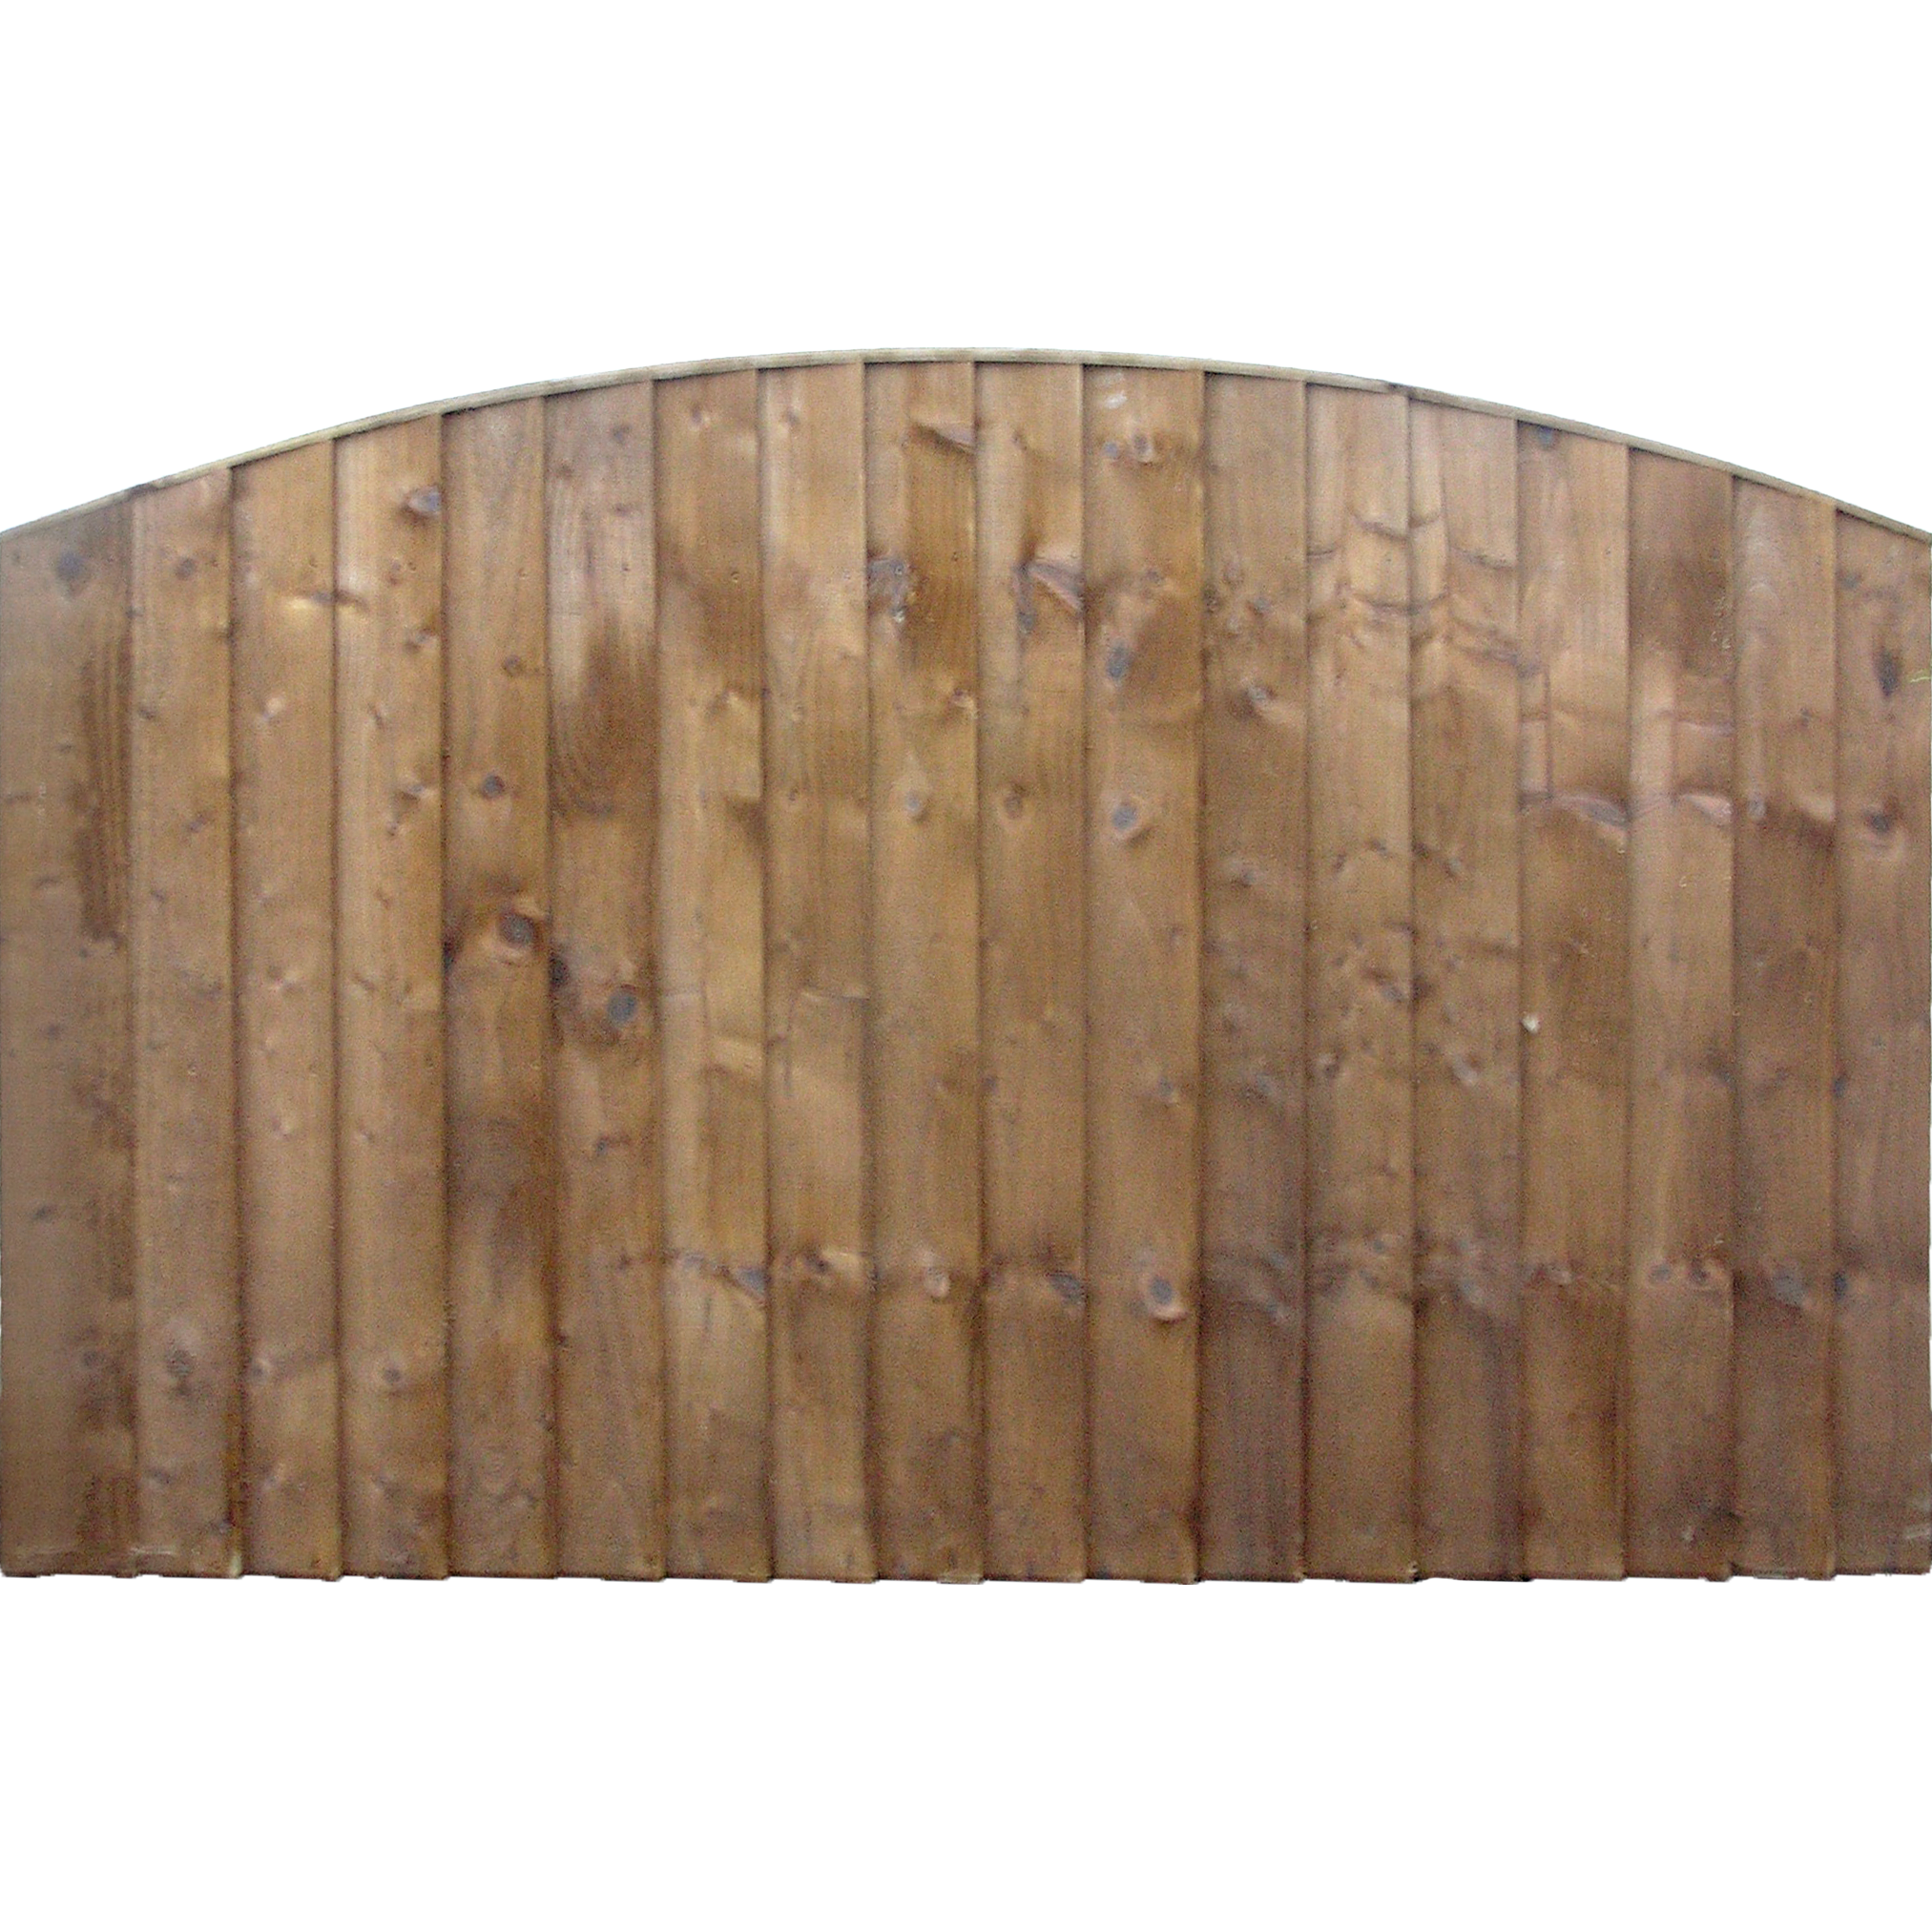 Dome top fence panels derby ascot fencing derby dome top fence panel baanklon Image collections